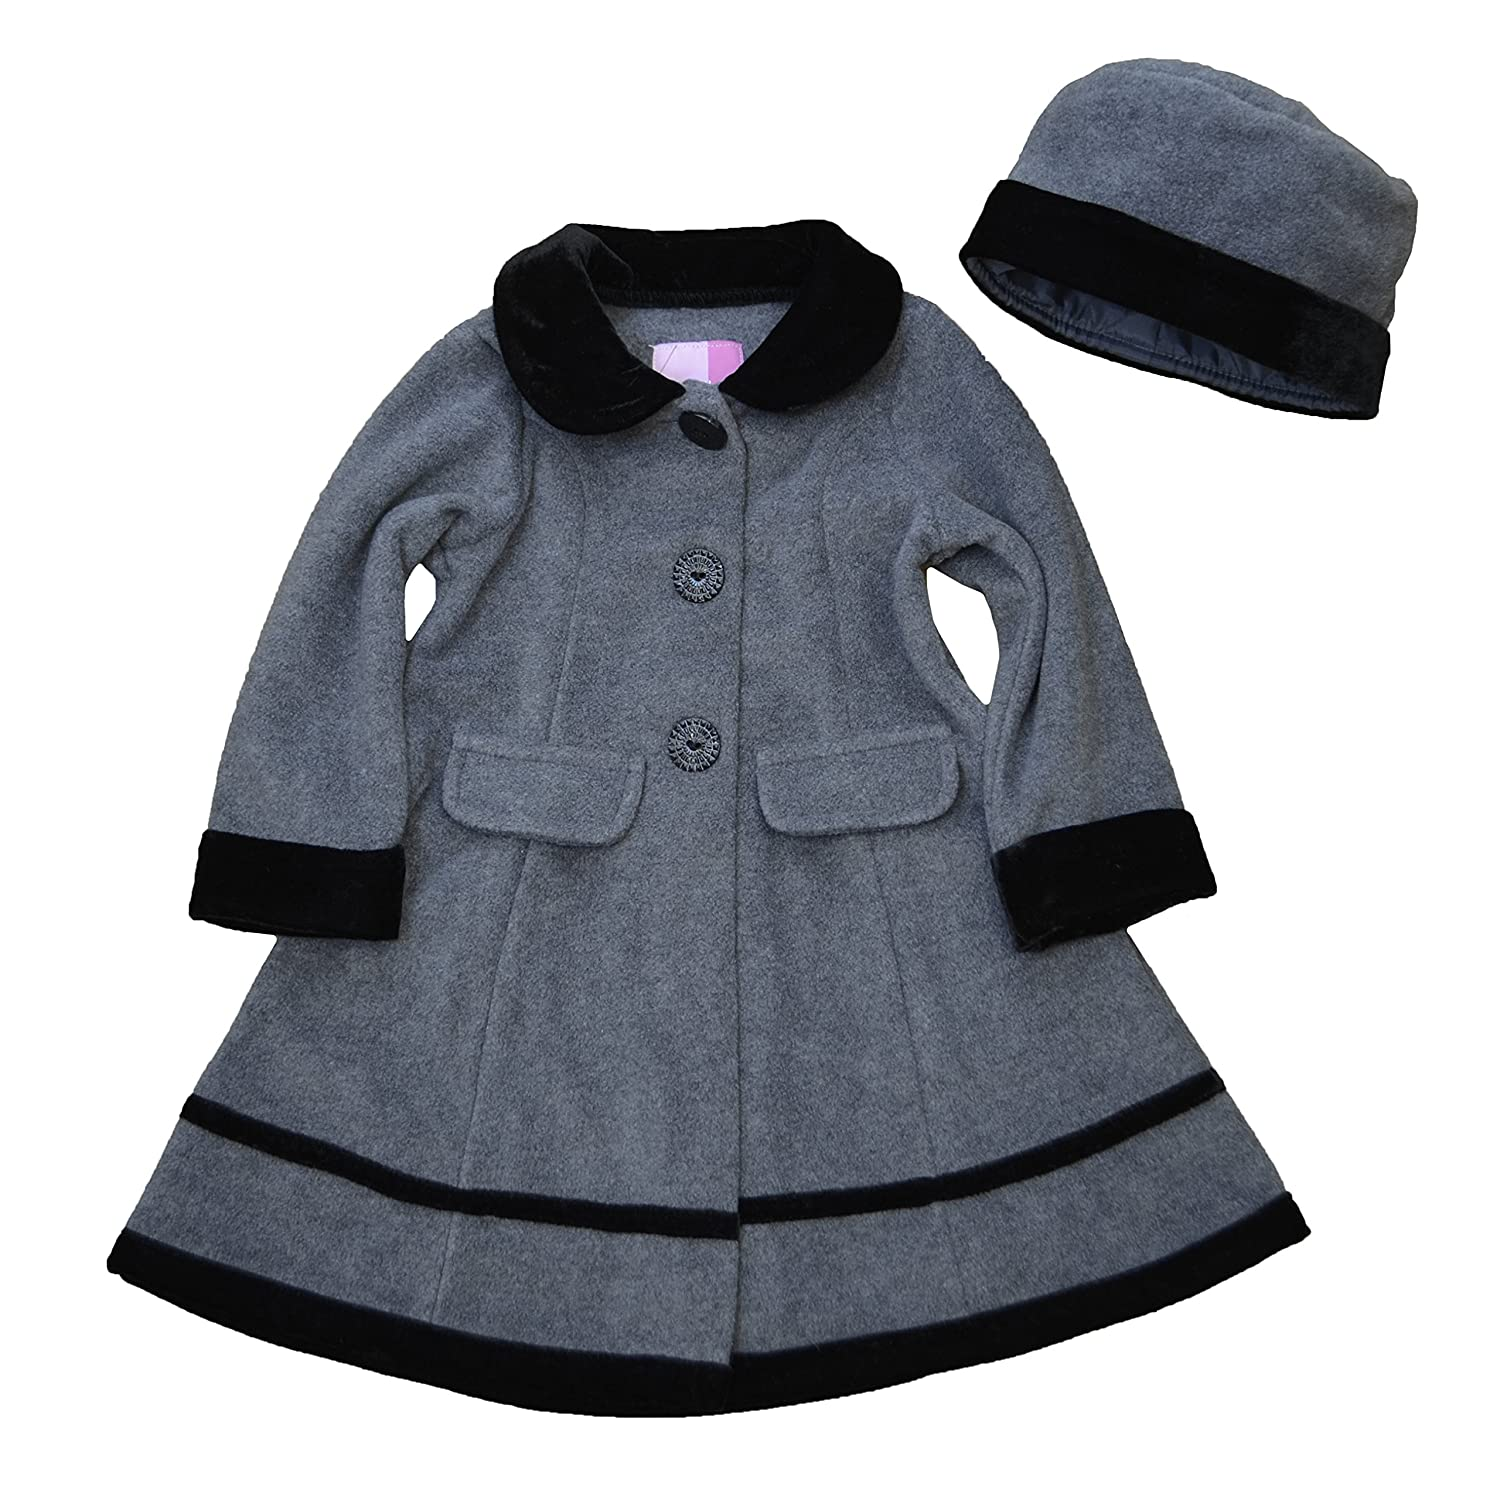 Vintage Style Children's Clothing: Girls, Boys, Baby, Toddler Good Lad Grey Fleece coat w/ black velvet trim and Matching hat  AT vintagedancer.com